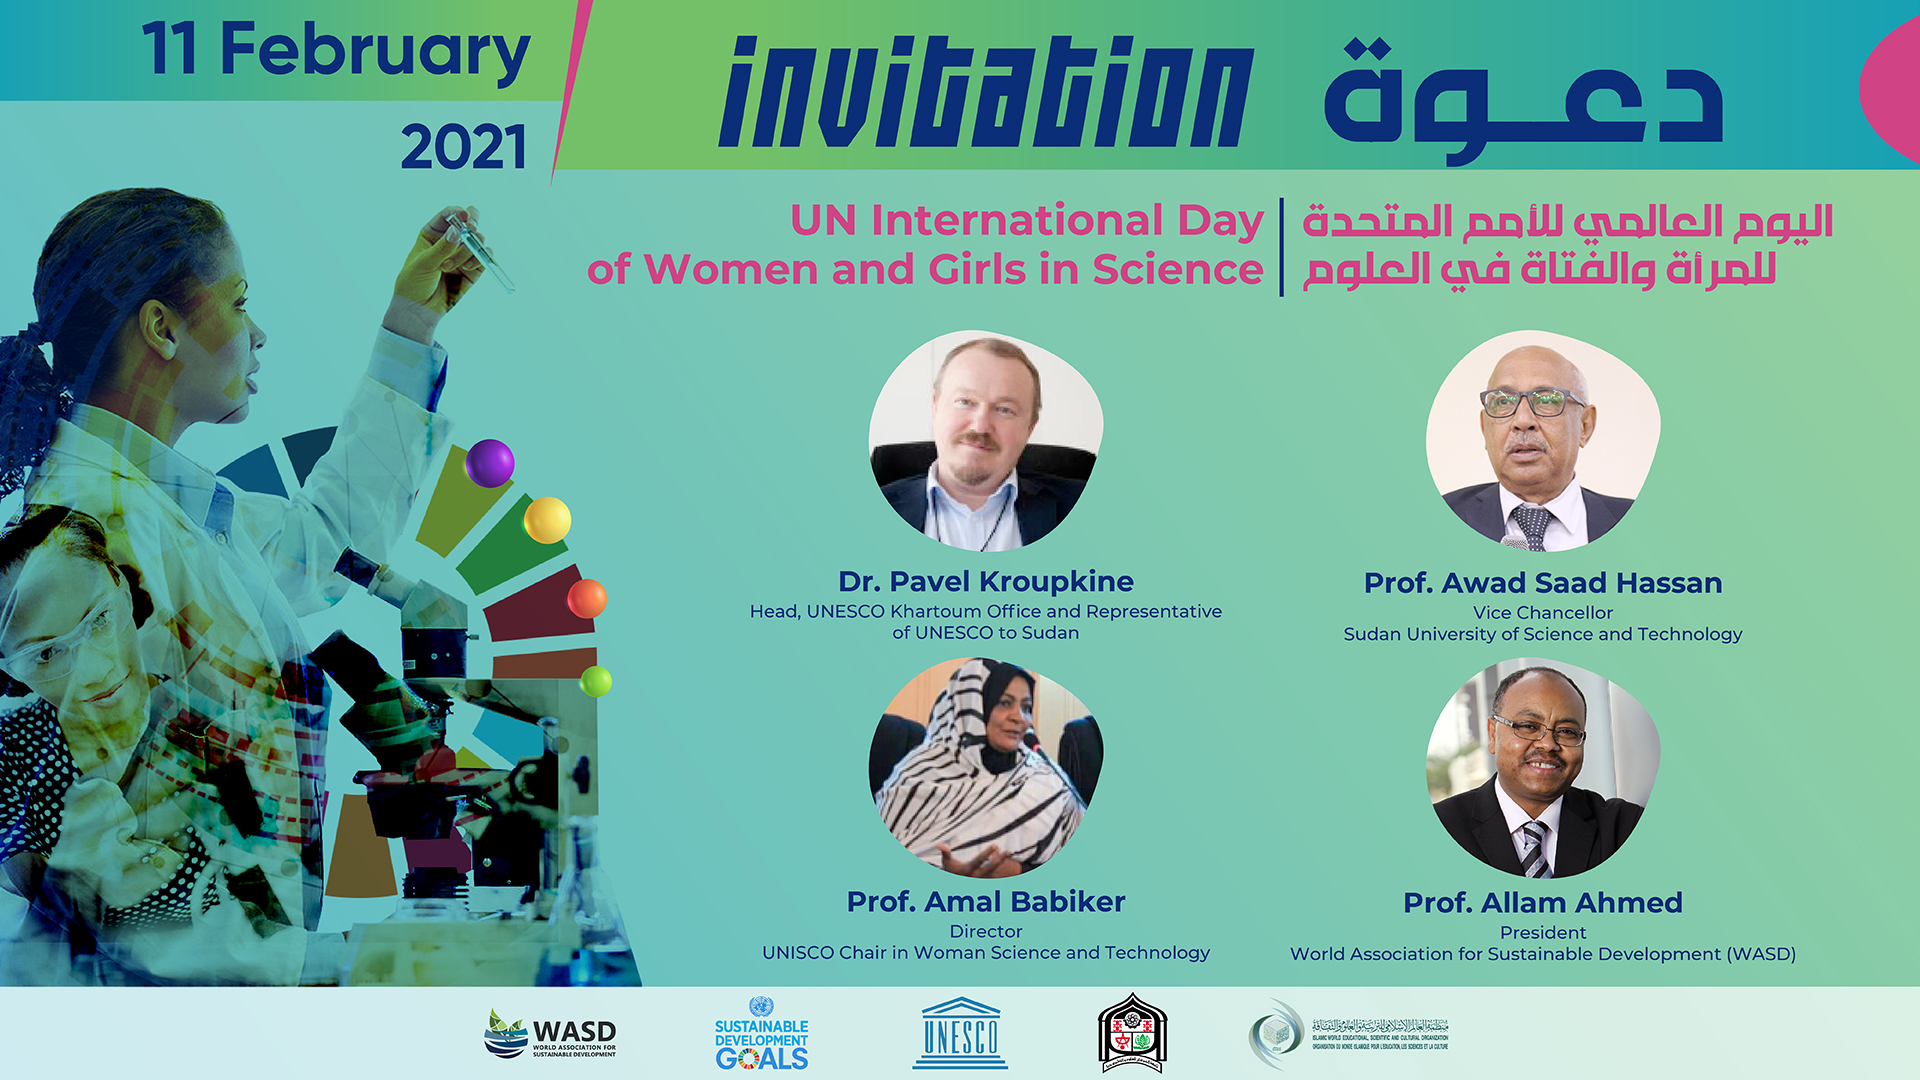 Event Program: UN International Day of Women and Girls in Science